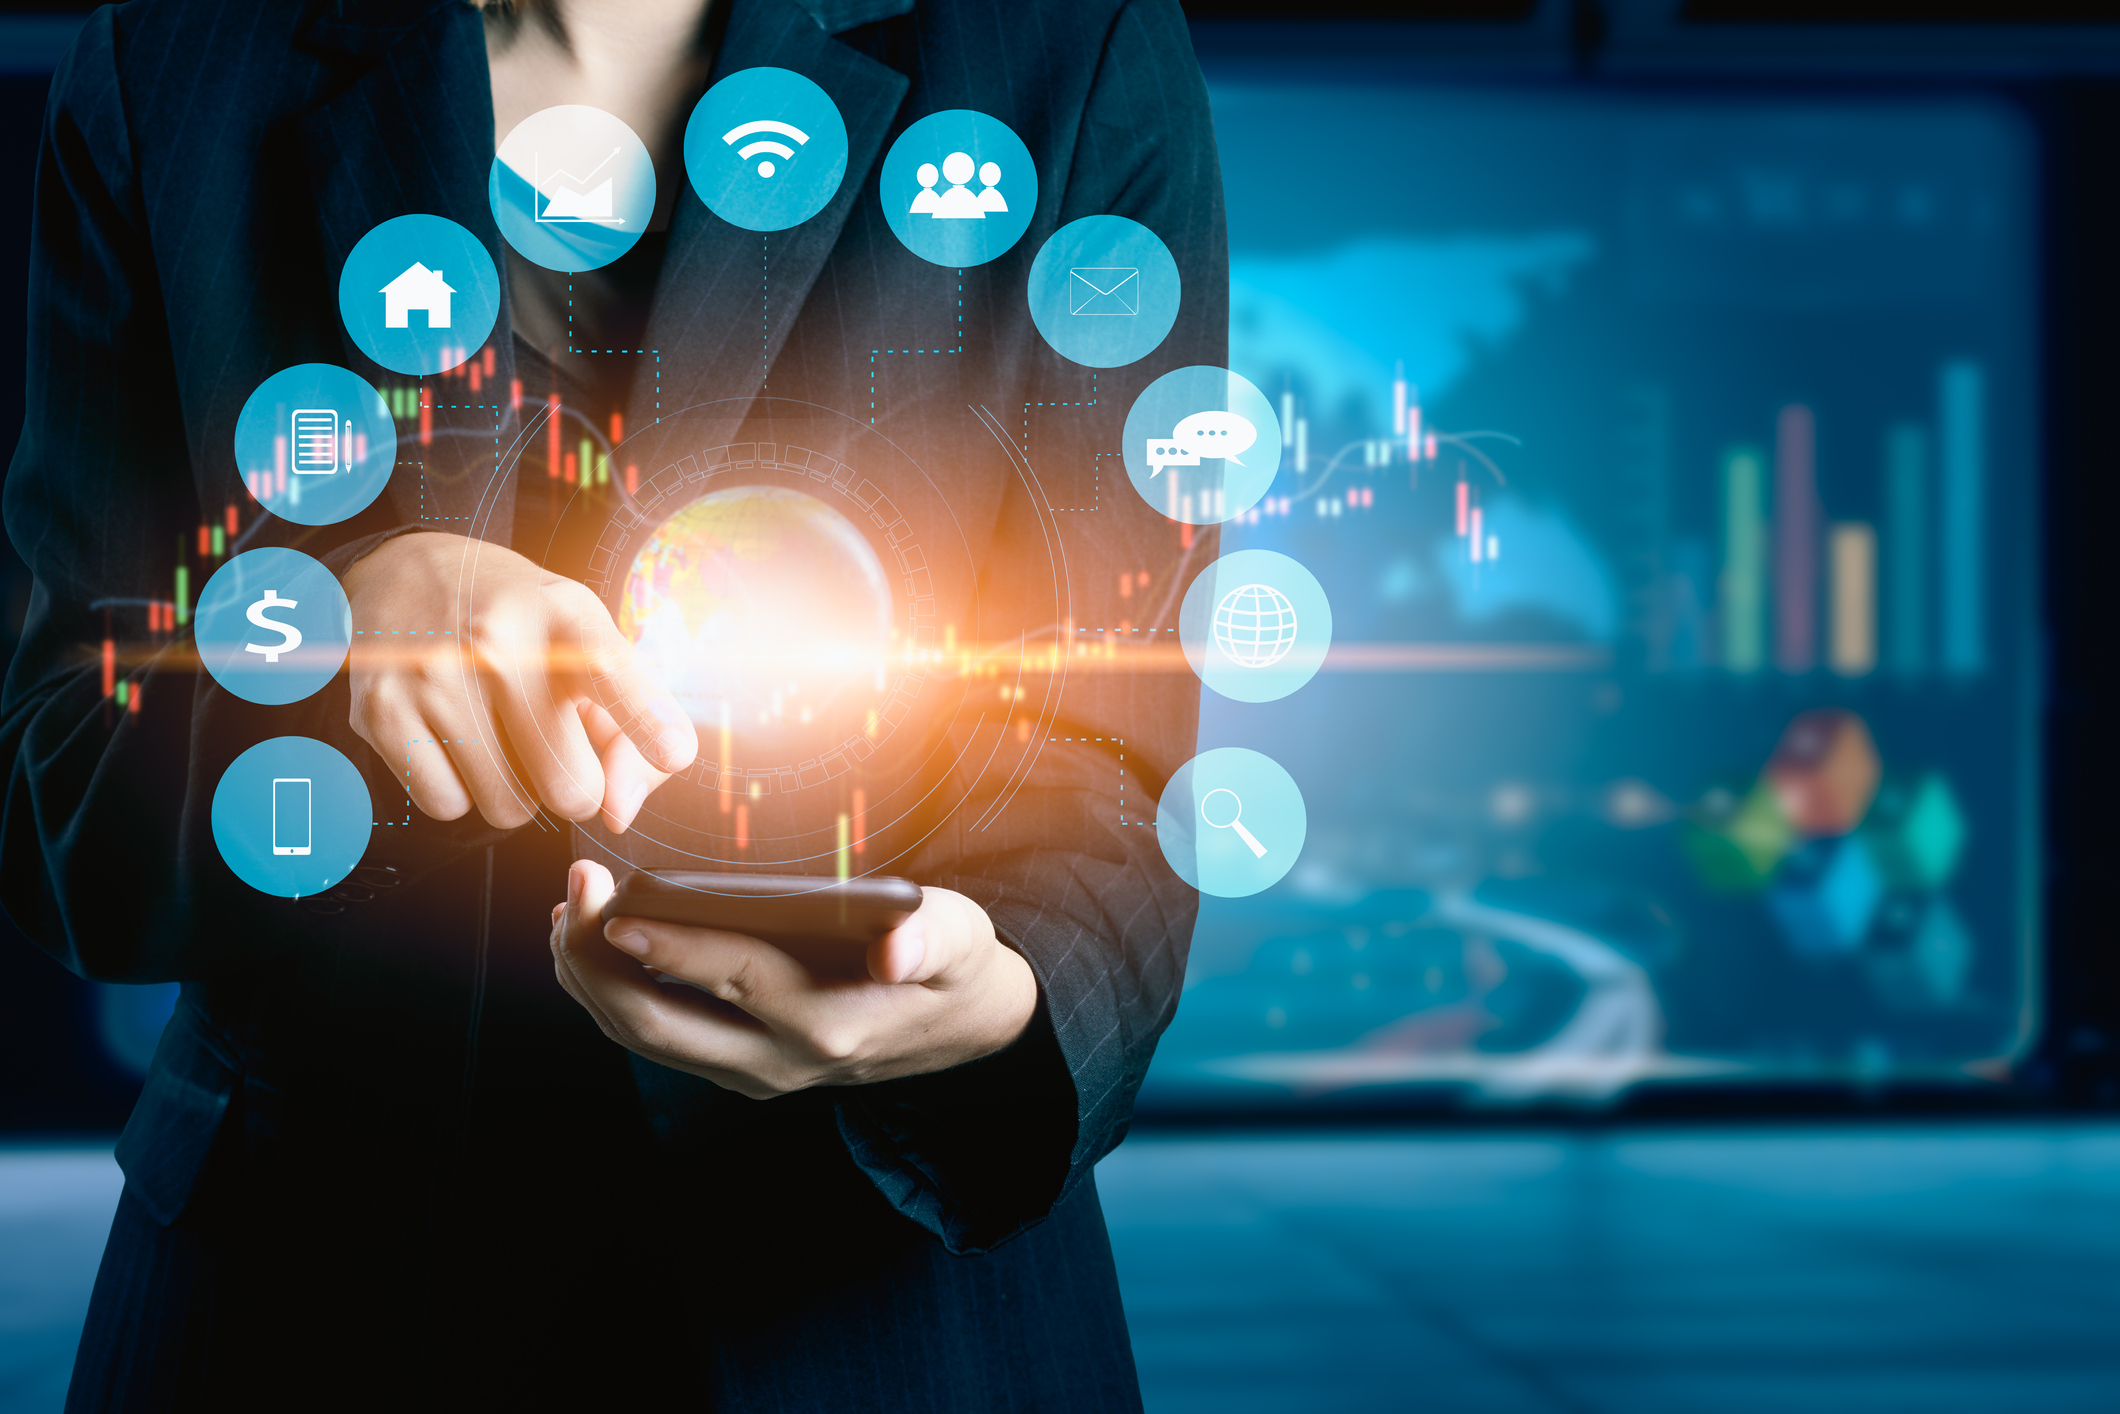 Businesswomen using mobile phone analyzing data and economic growth graph chart. Technology digital marketing and network connection.